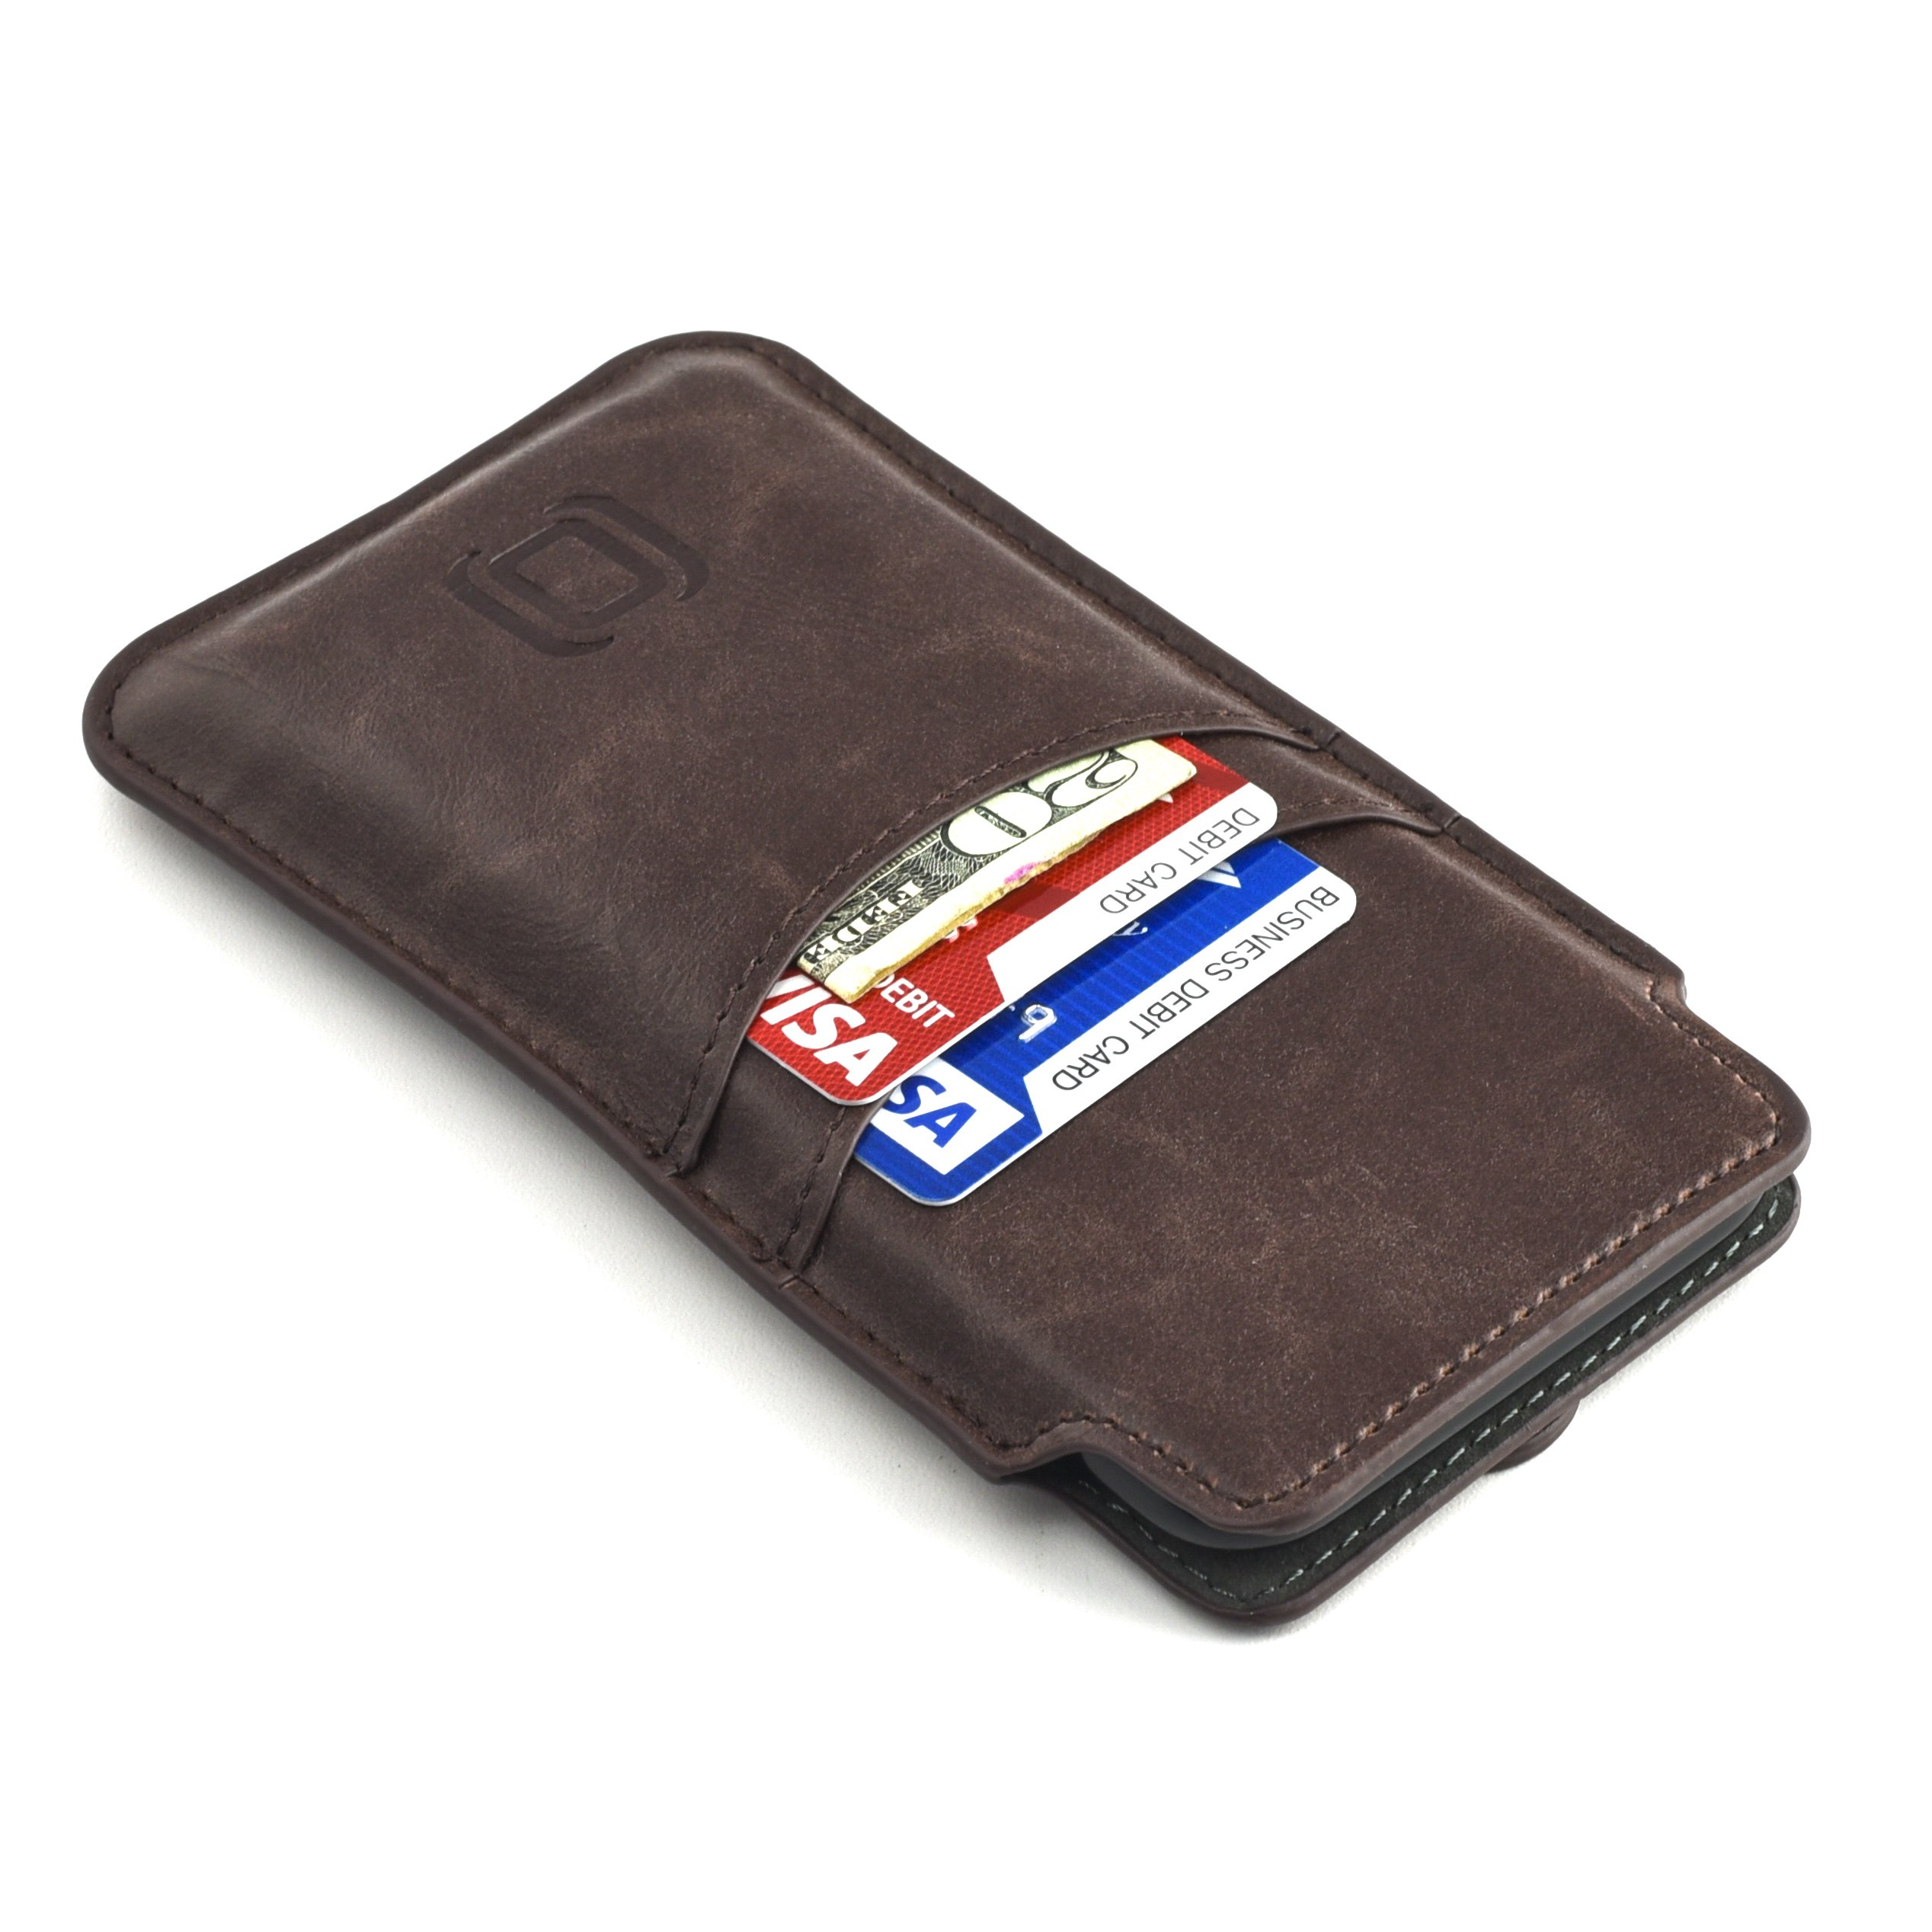 Dockem Provincial Wallet Sleeve for iPhone X; Ultra Slim Vintage Synthetic Leather Cover with 2 Card Holder Slots; Professional Executive Pouch Case [Brown]